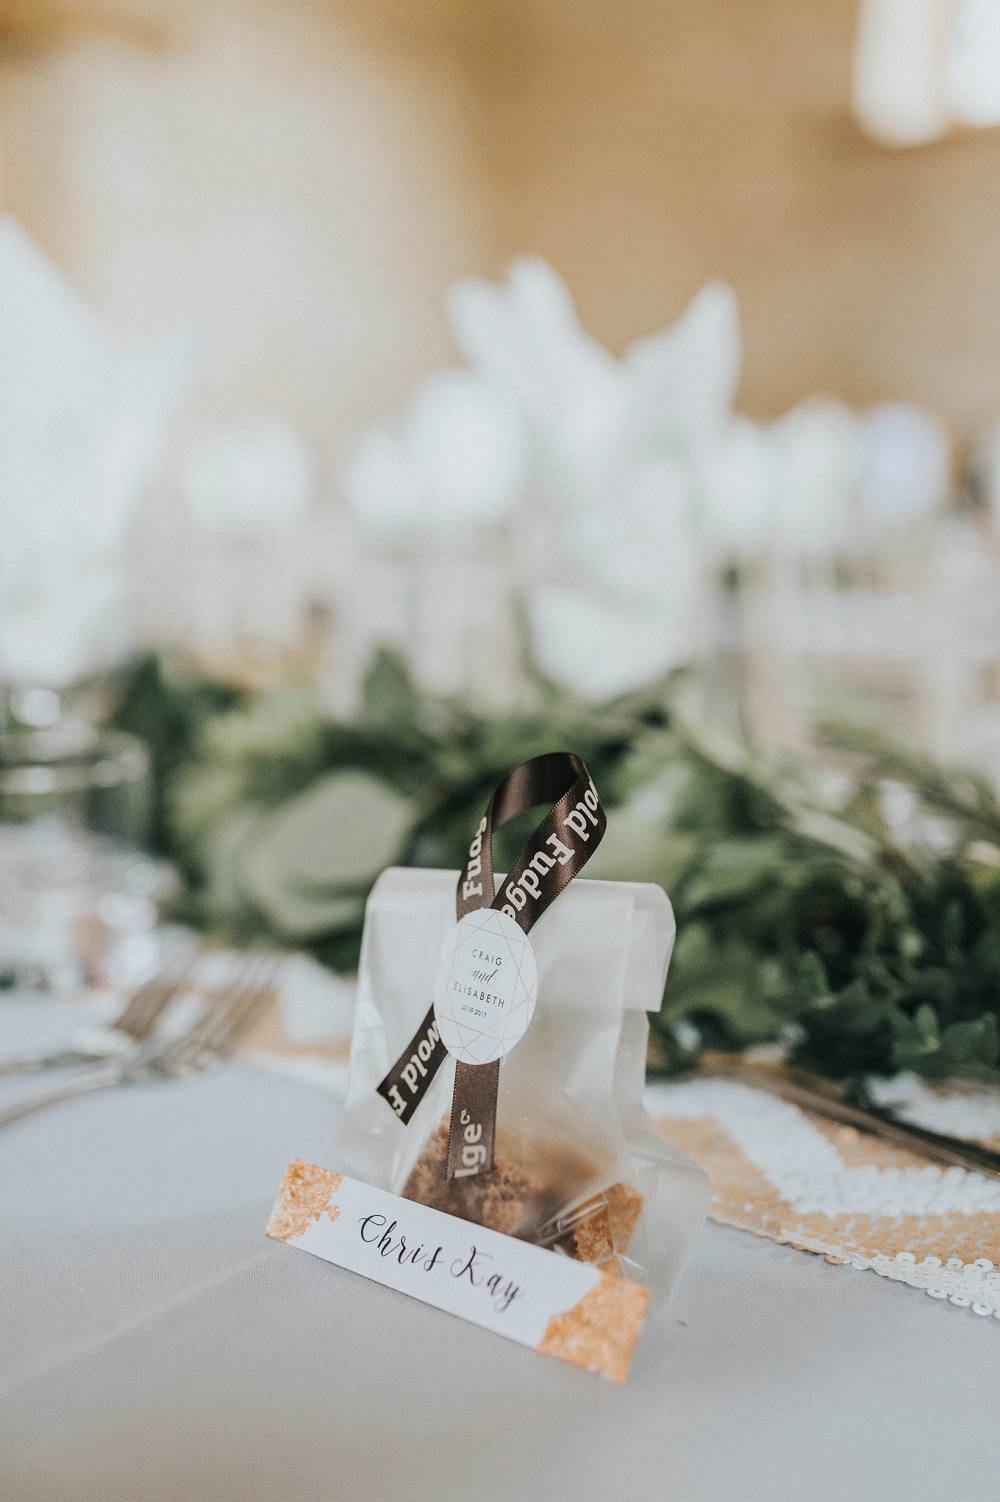 Fudge Favours Place Name Card Copper Eucalyptus Boho Greenery Barn Wedding Kerry Diamond Photography